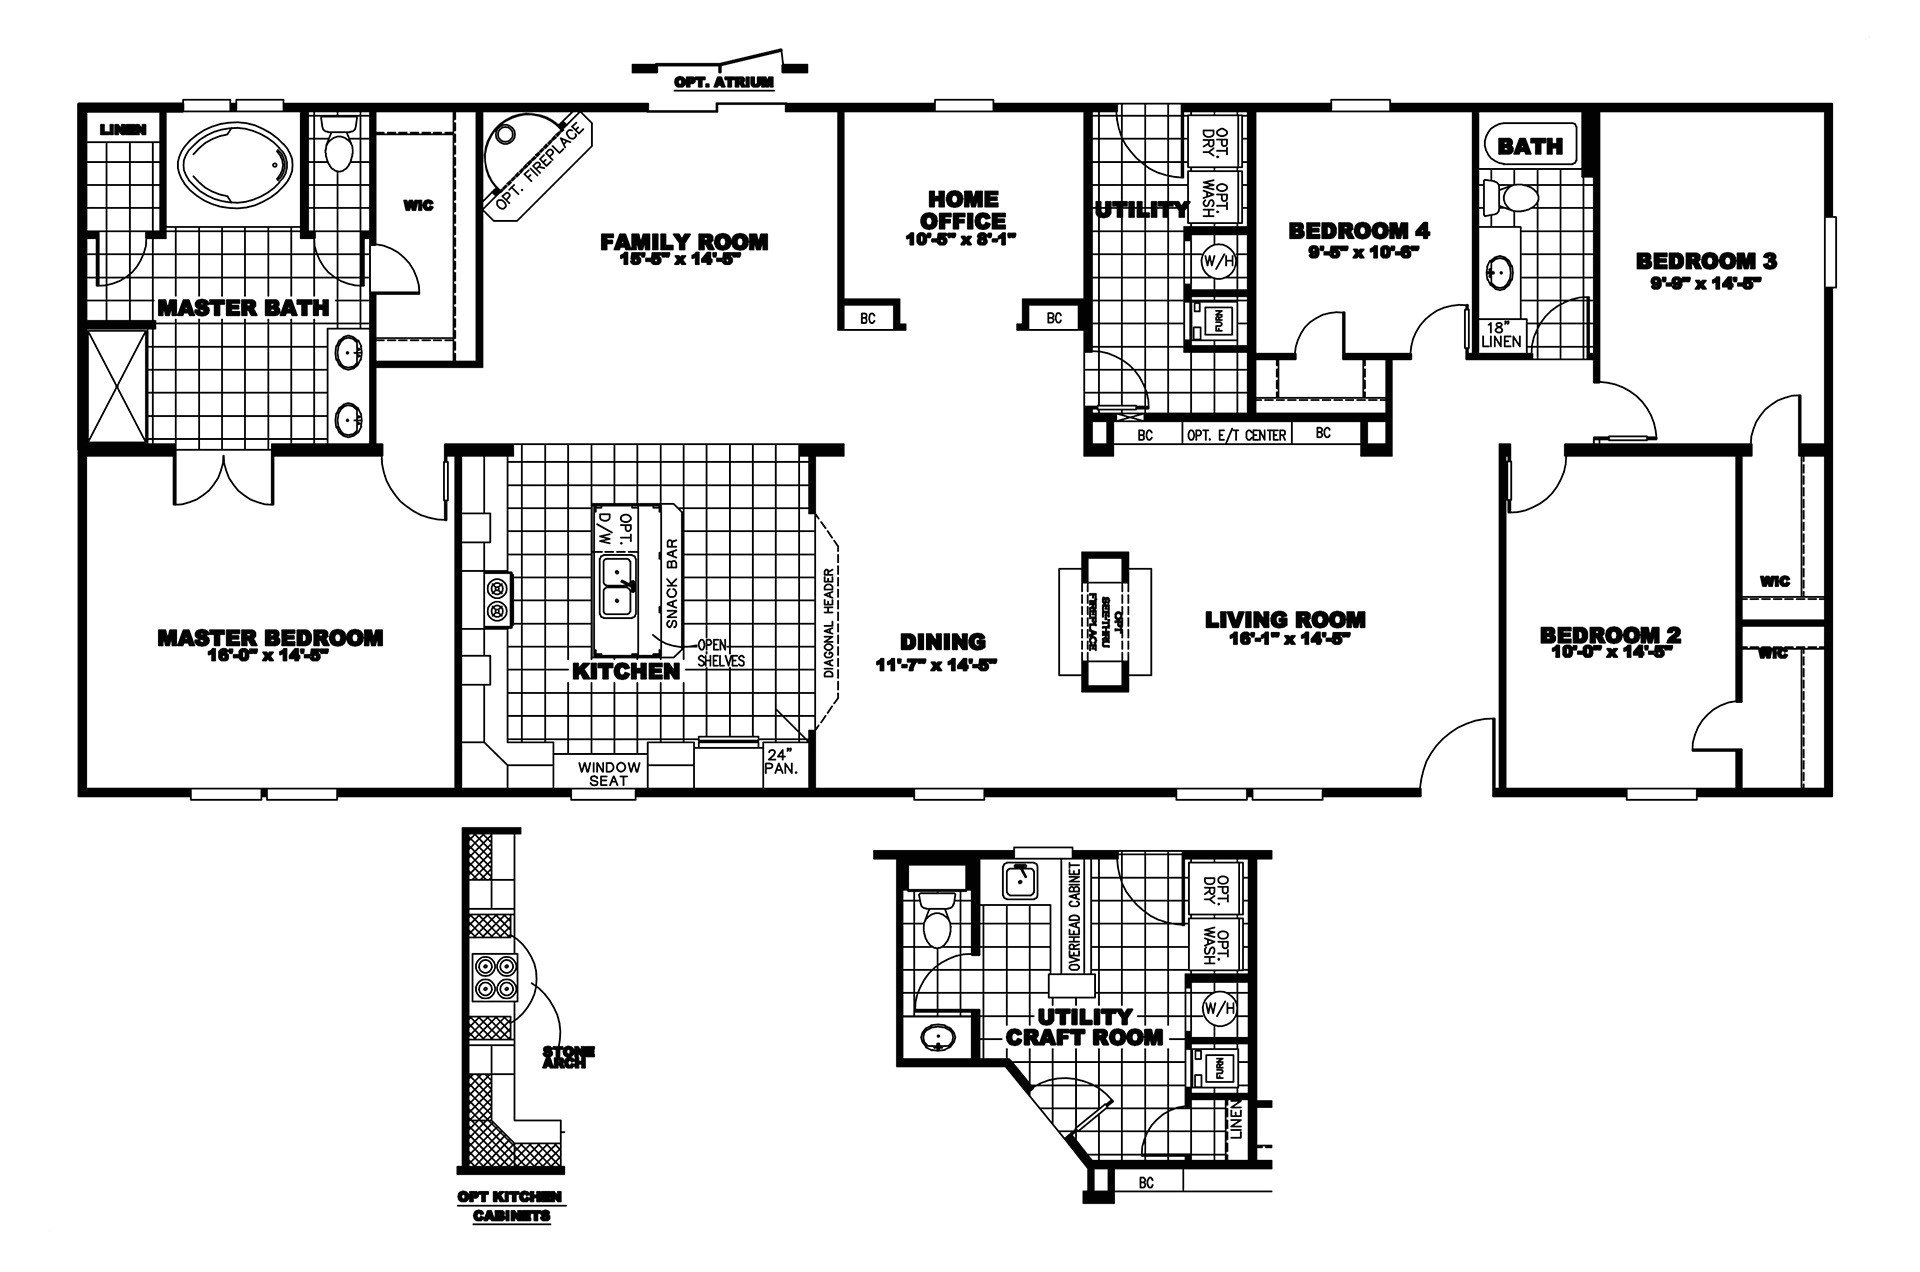 Clayton Mobile Homes Floor Plans Clayton Della Mmd Bestofhouse Net 11971